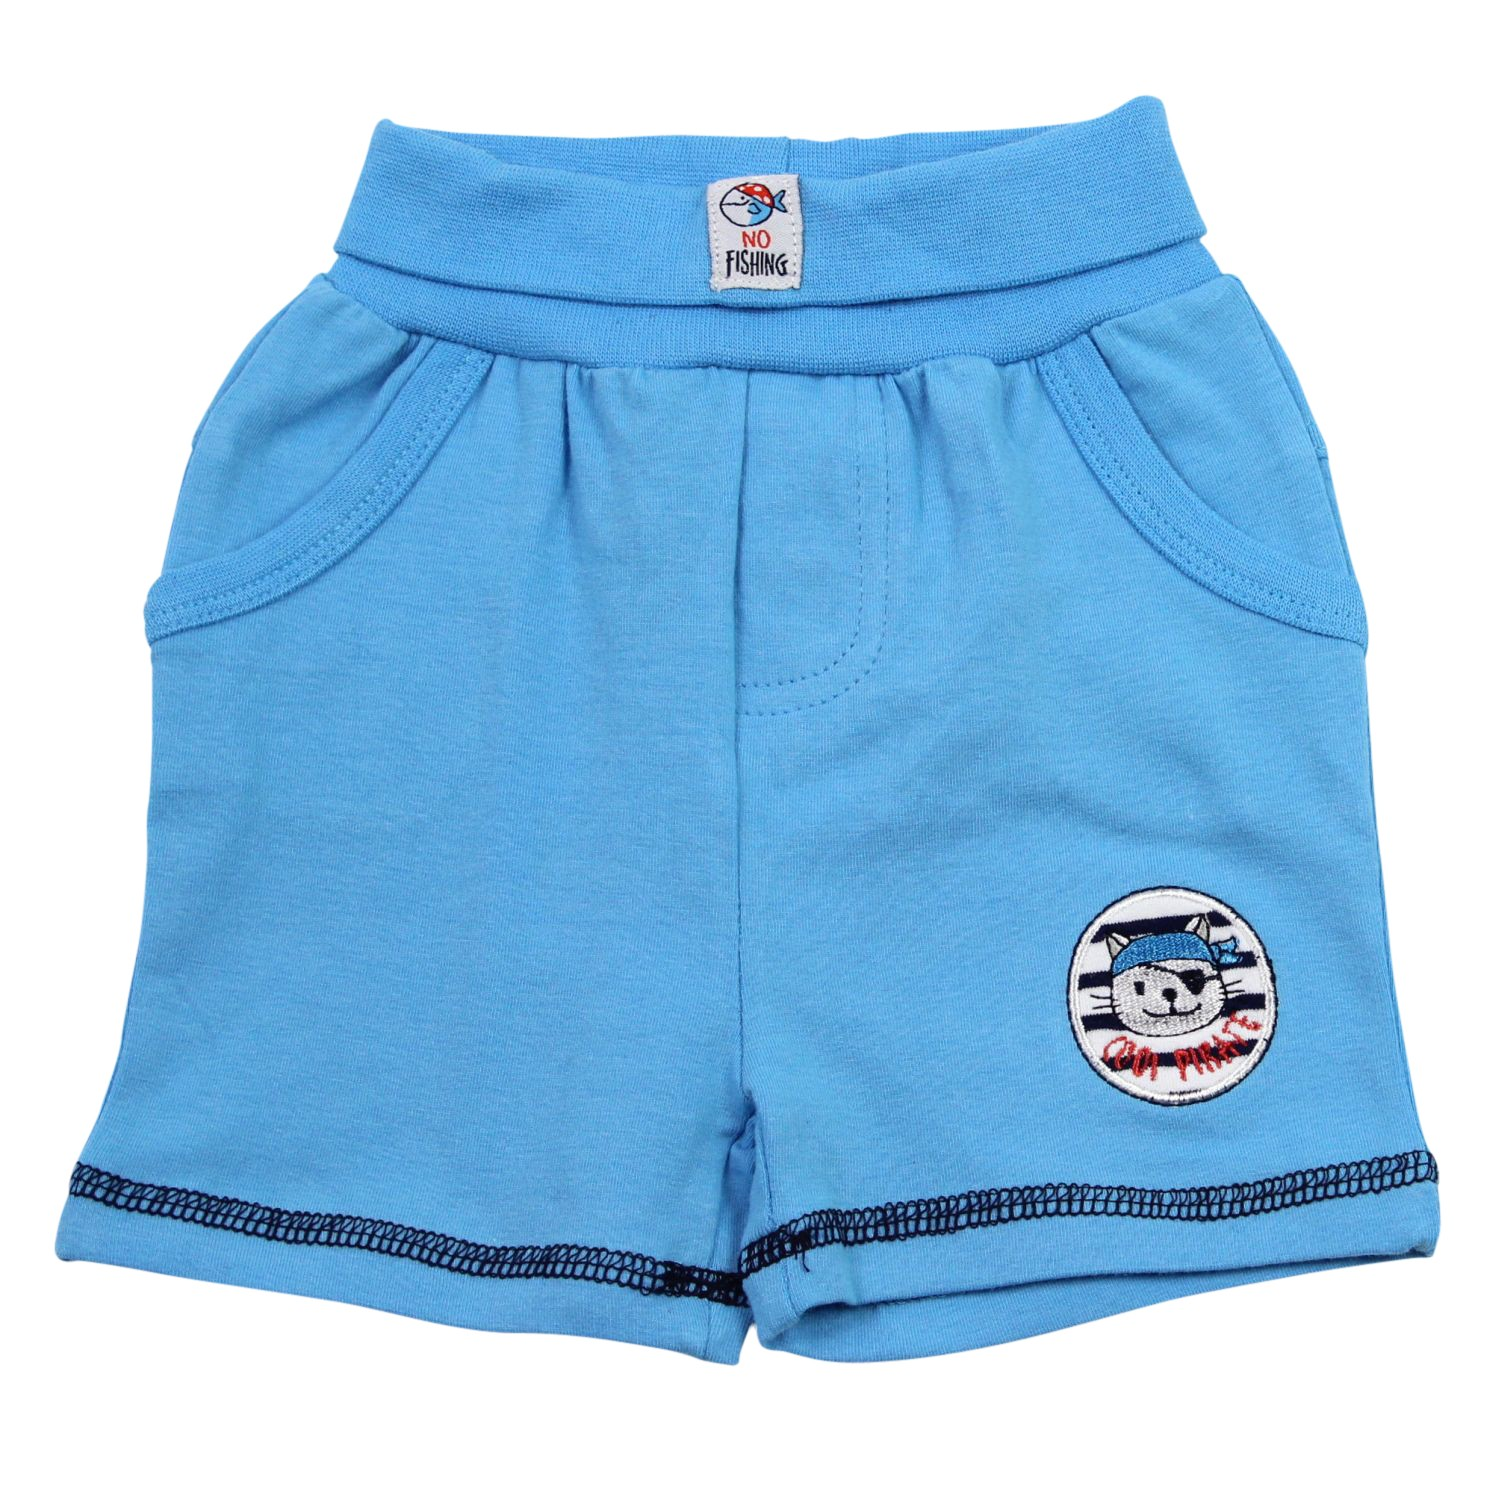 salt and pepper baby jungen bermuda kurze hose shorts kater pirat blau ebay. Black Bedroom Furniture Sets. Home Design Ideas